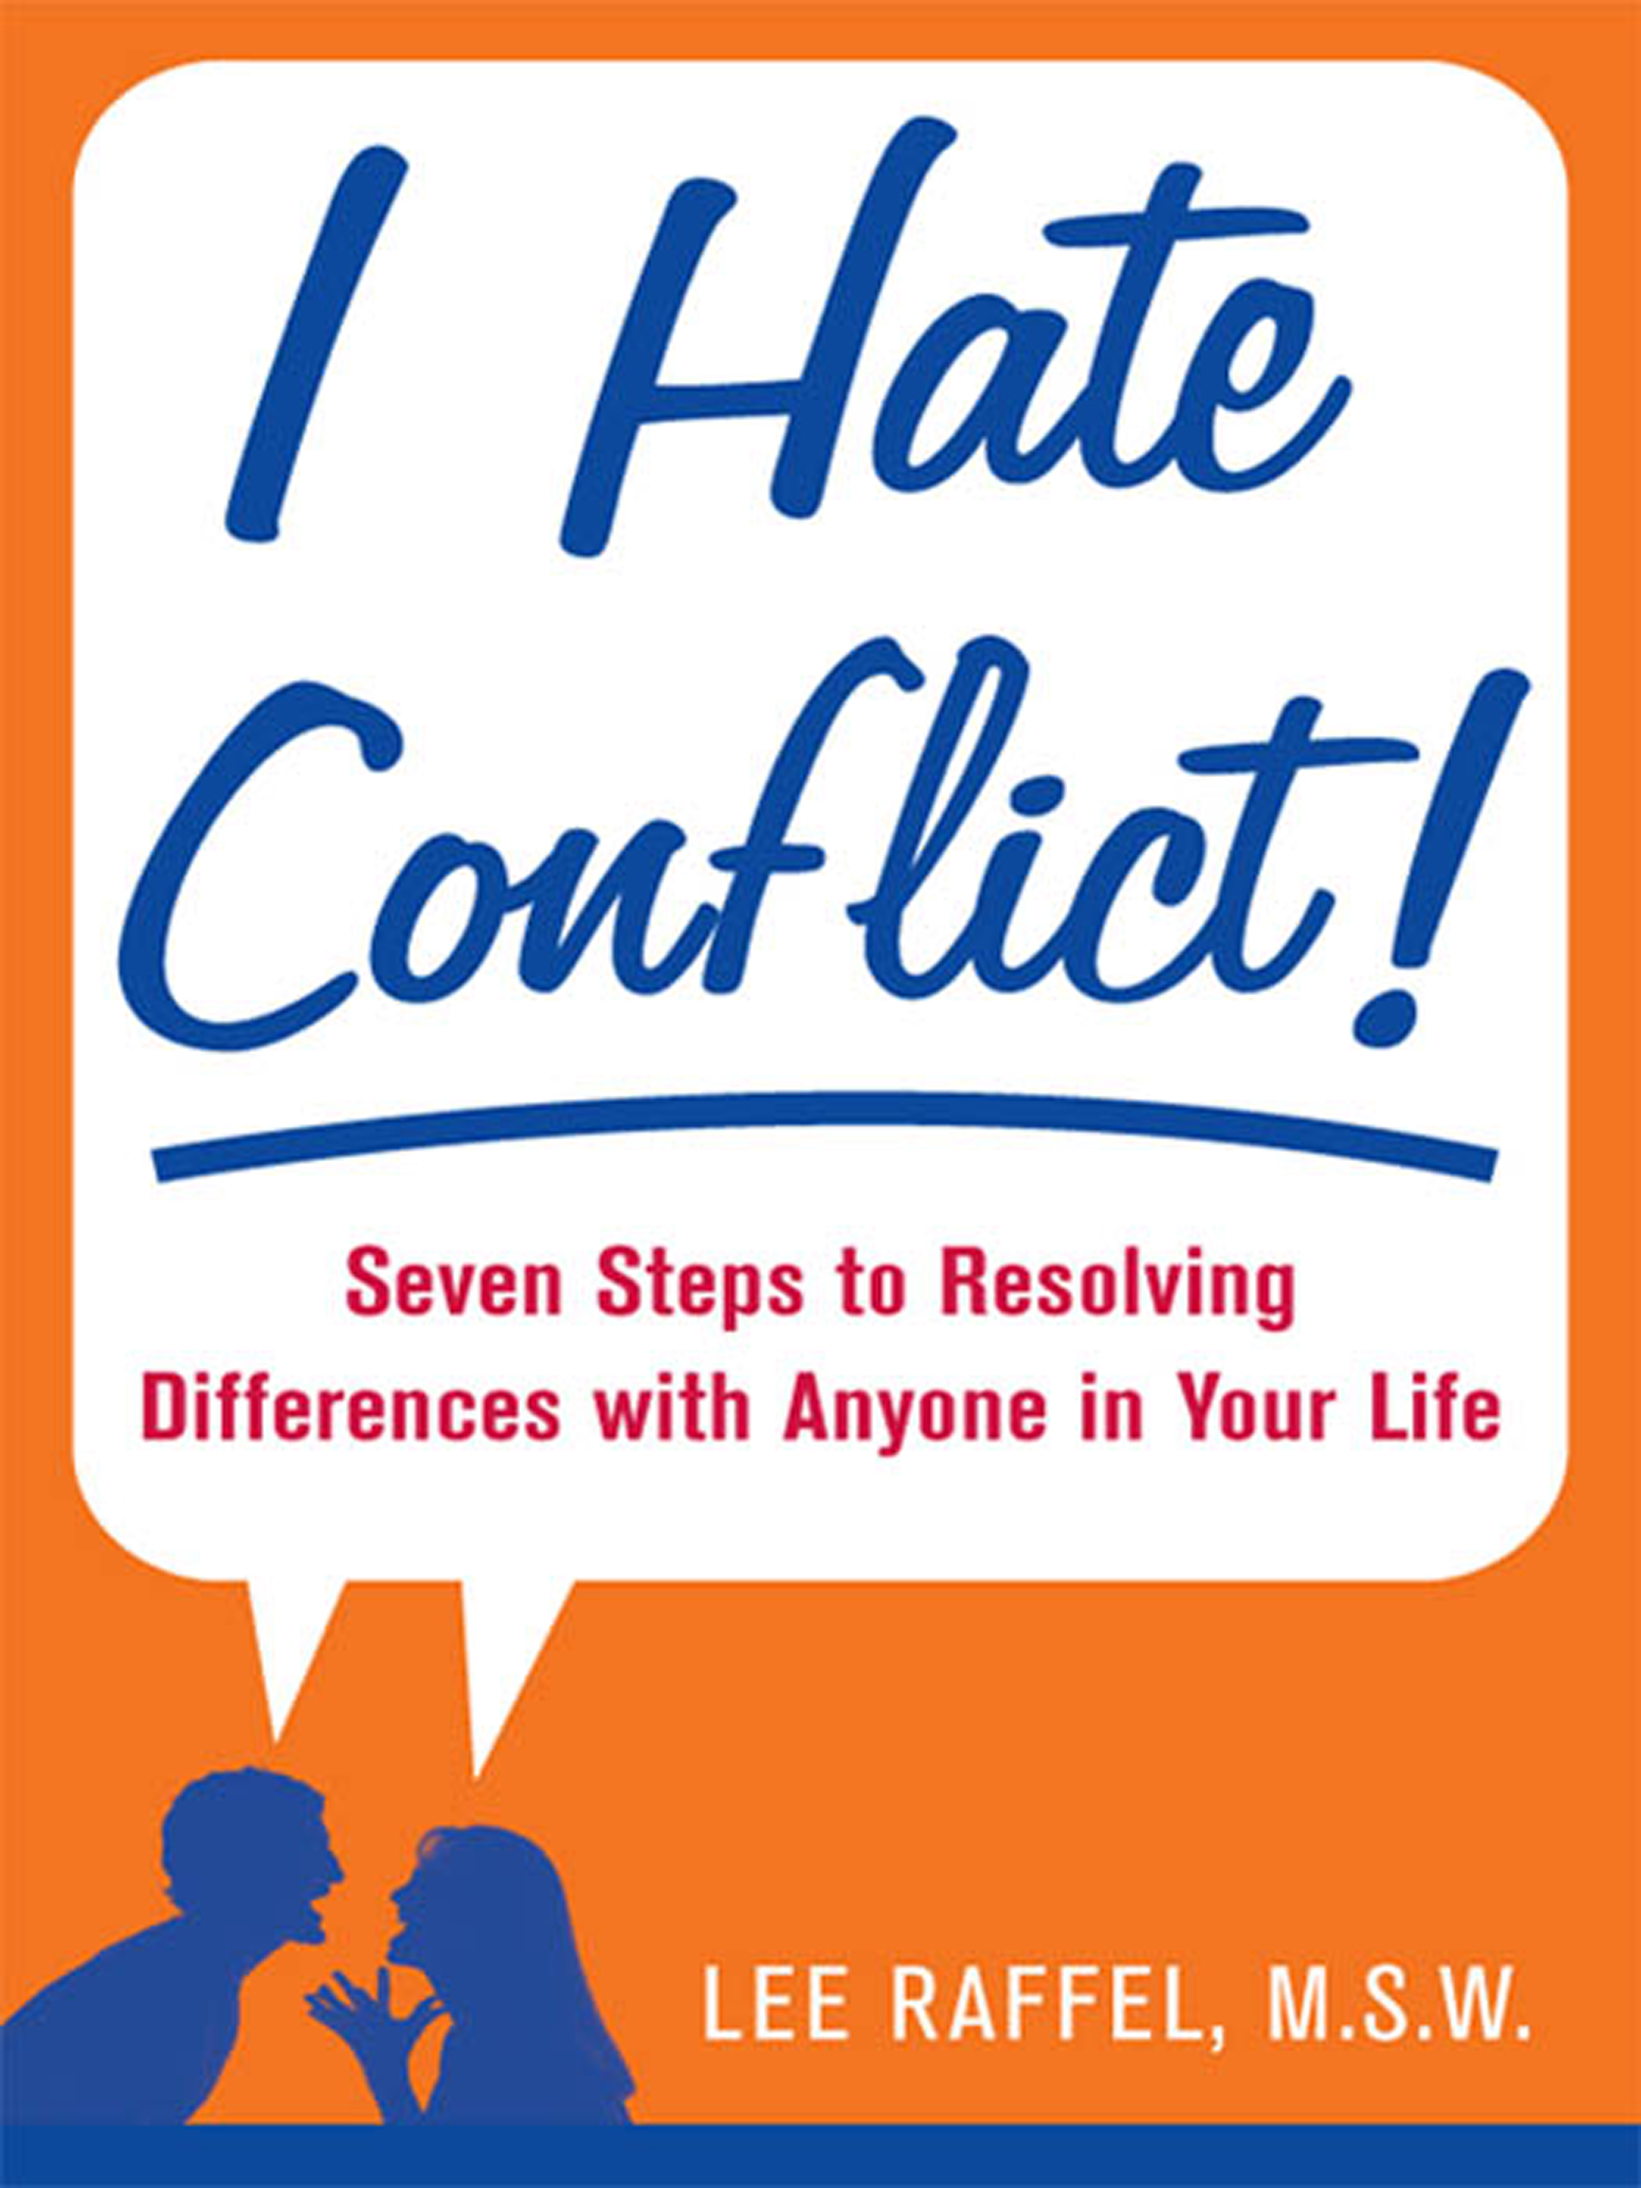 Download Ebook I Hate Conflict! by Lee Raffel Pdf